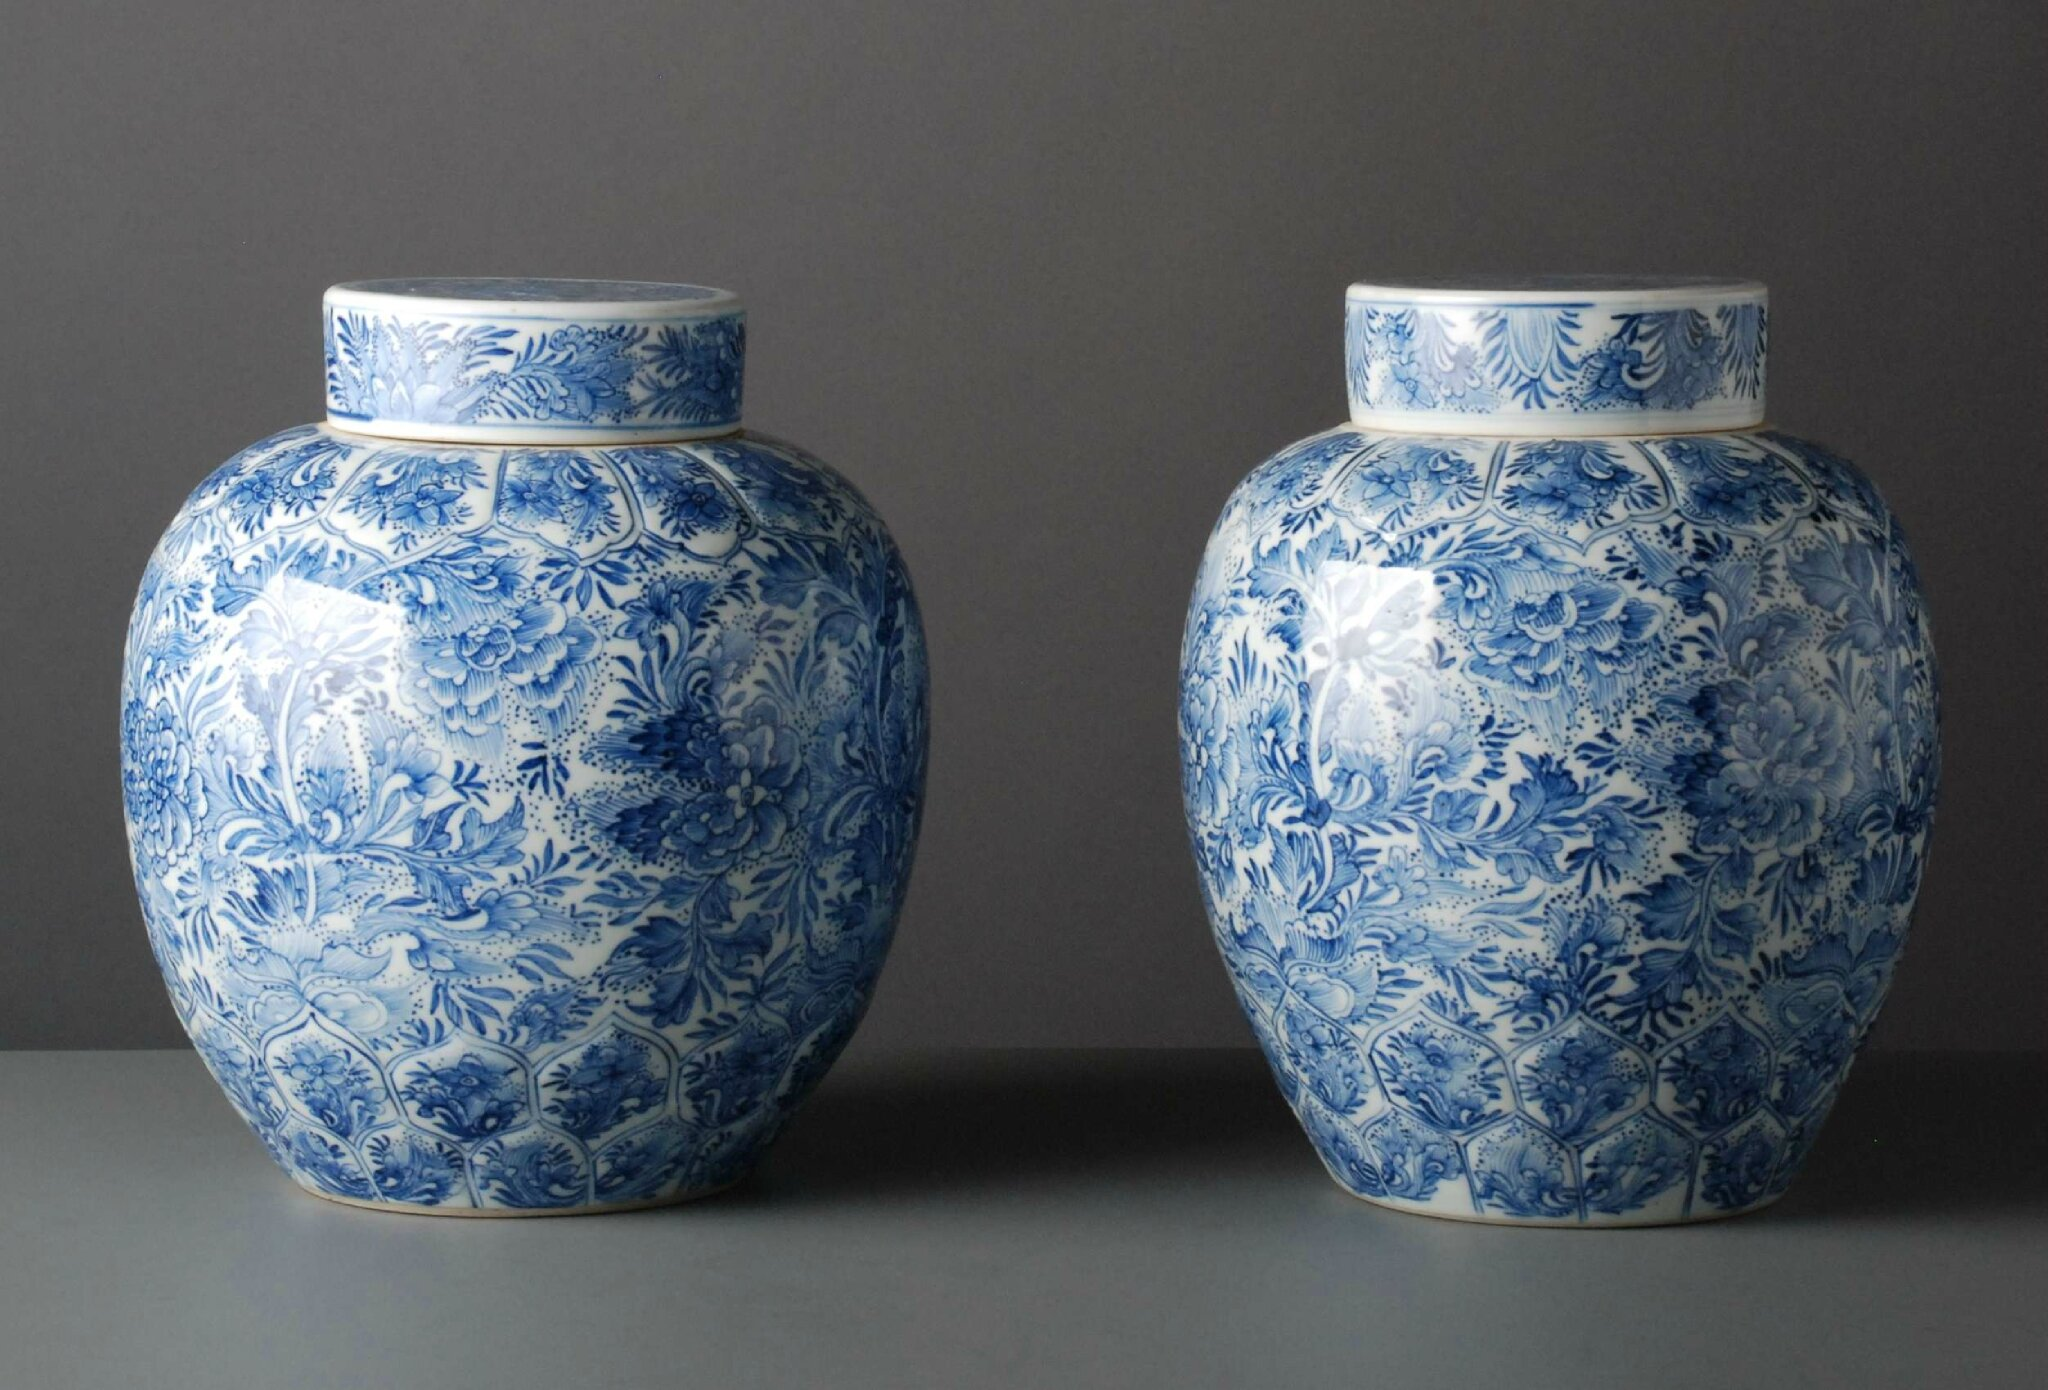 Pair of blue & white ginger jars, China, Kangxi Period (1662-1722). Photo courtesy Vanderven Oriental Art.